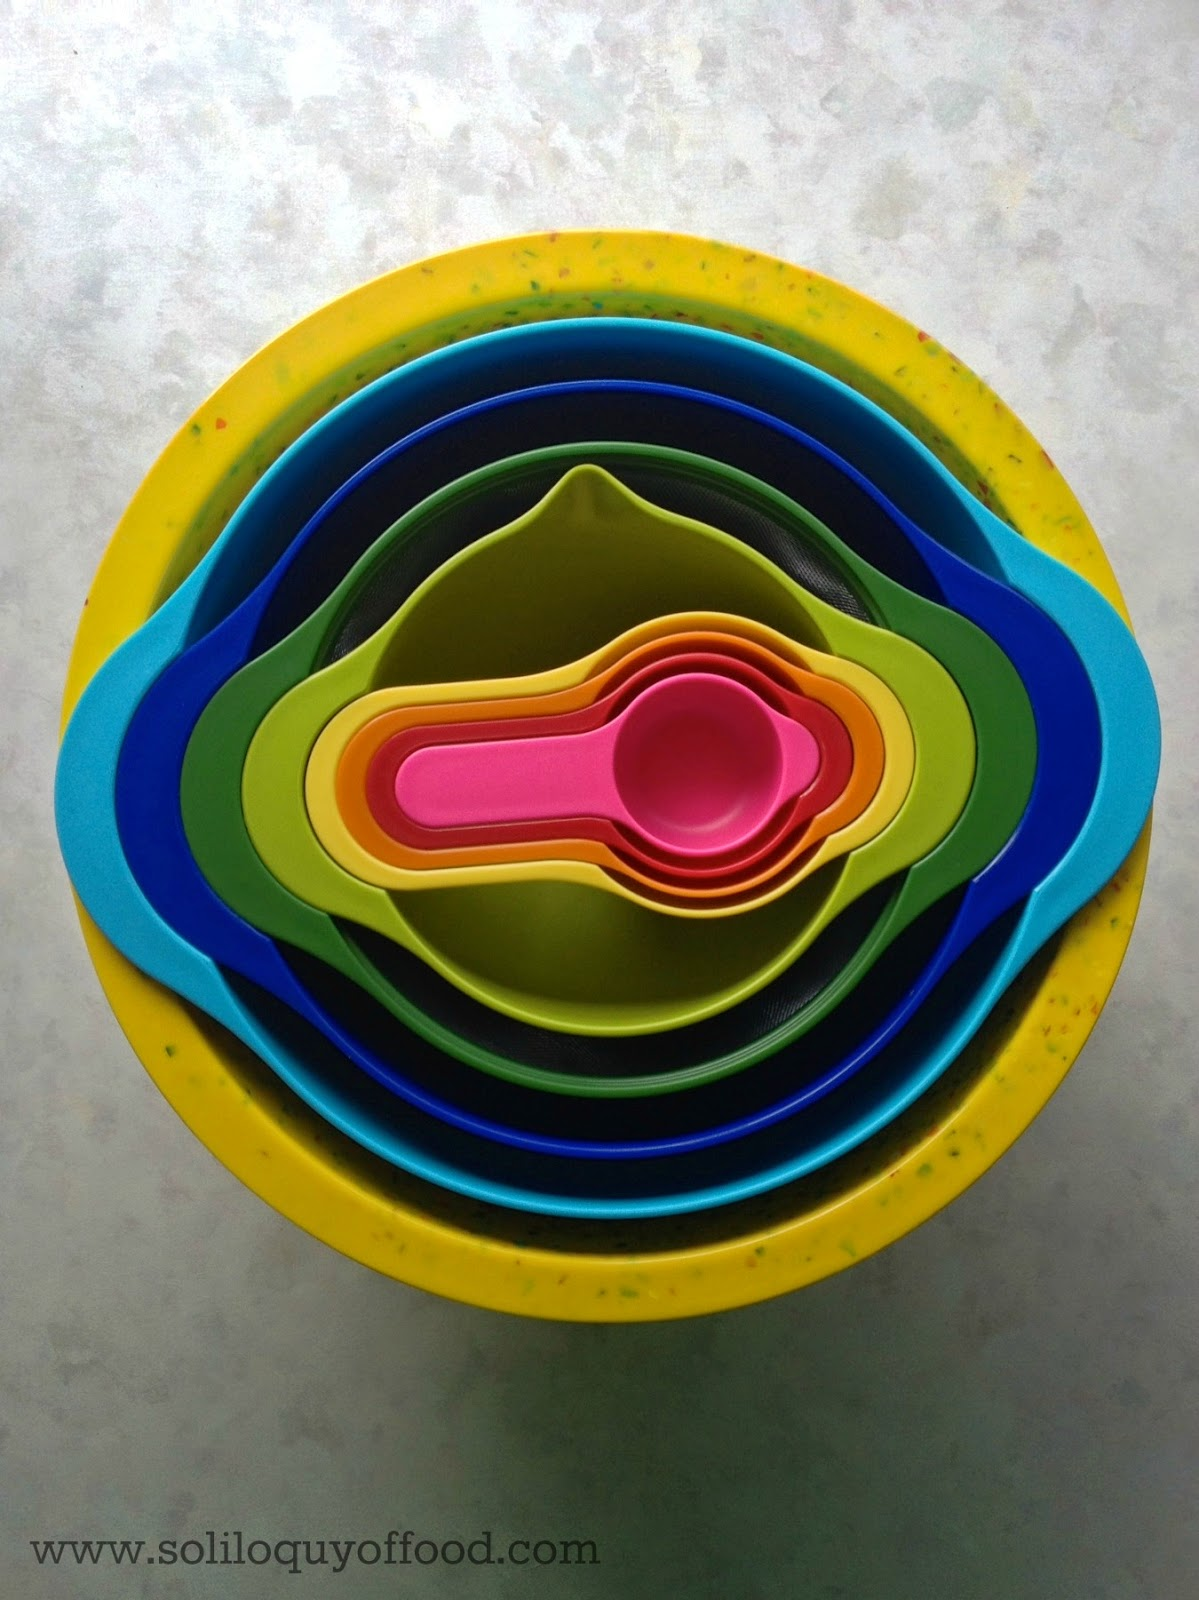 Fridays Find:  Joseph Joseph Wares - It All Fits In My Zak Bowl!! - www.soliloquyoffood.com